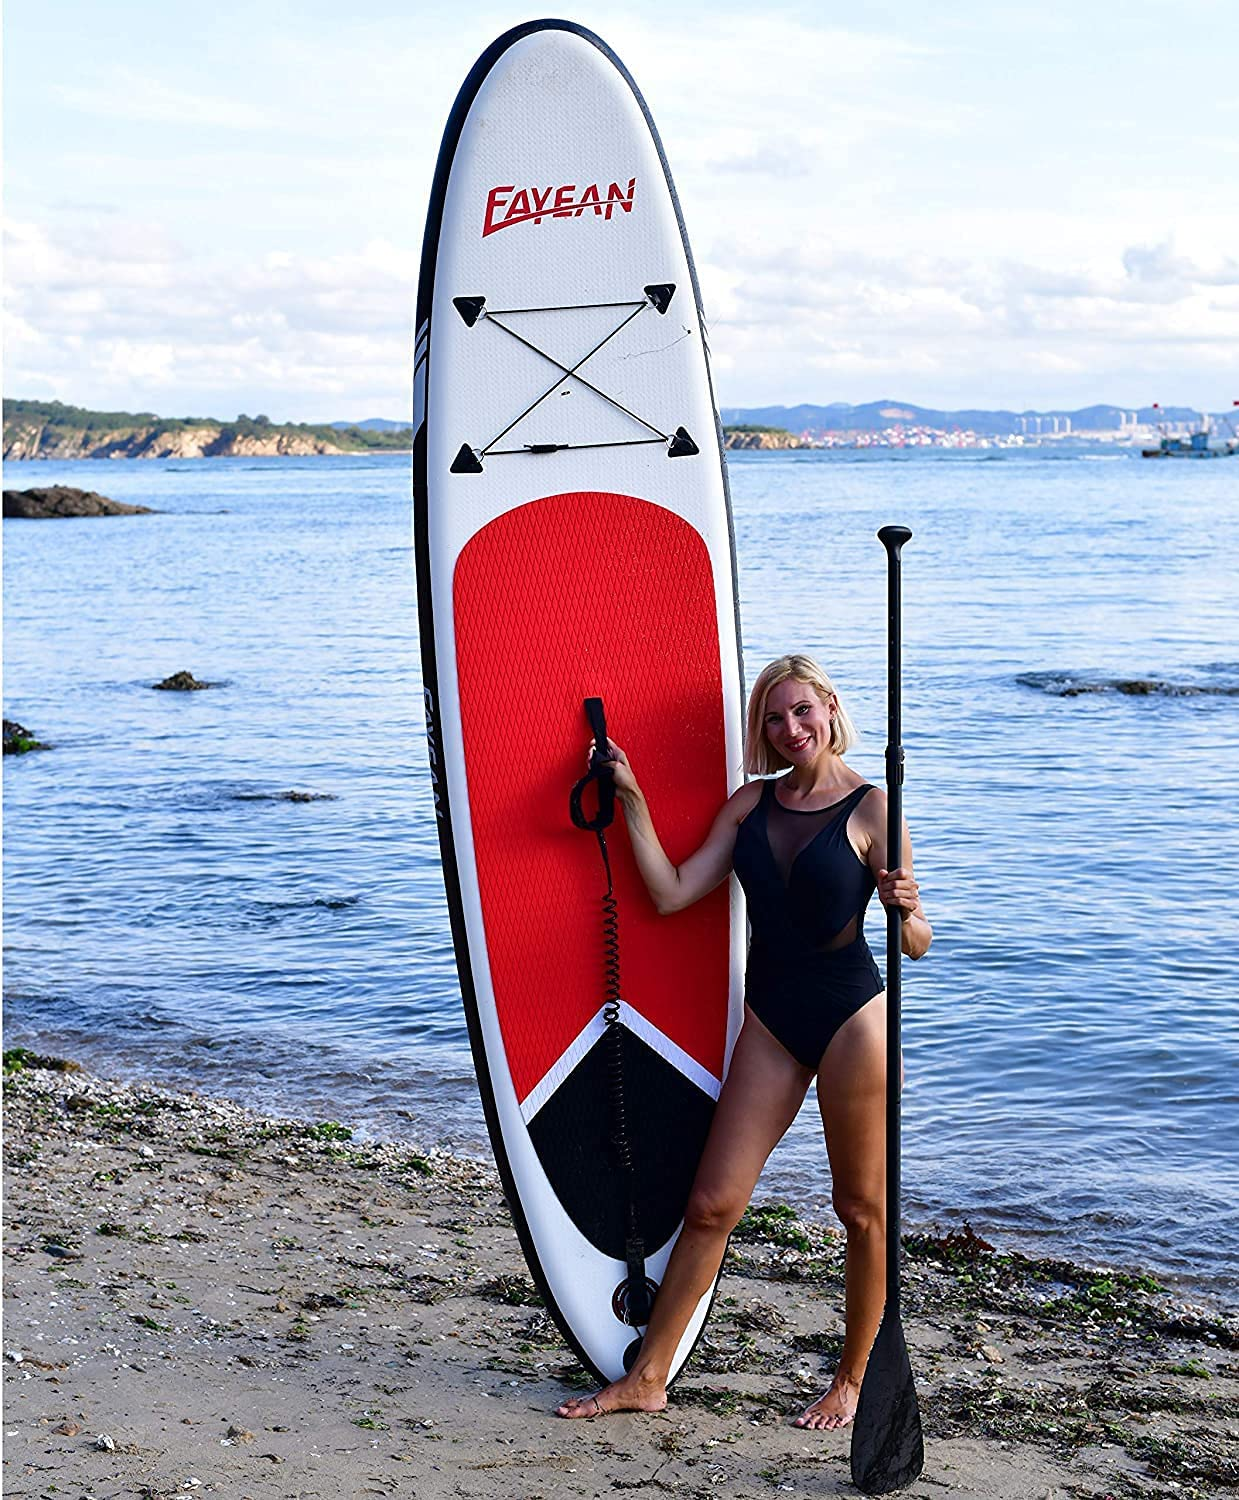 dotshio_whale_red_paddle_sizes_sup_surf_board_inflatable_cheap_with_all_accessories_construction_sizes_measures_model_beach